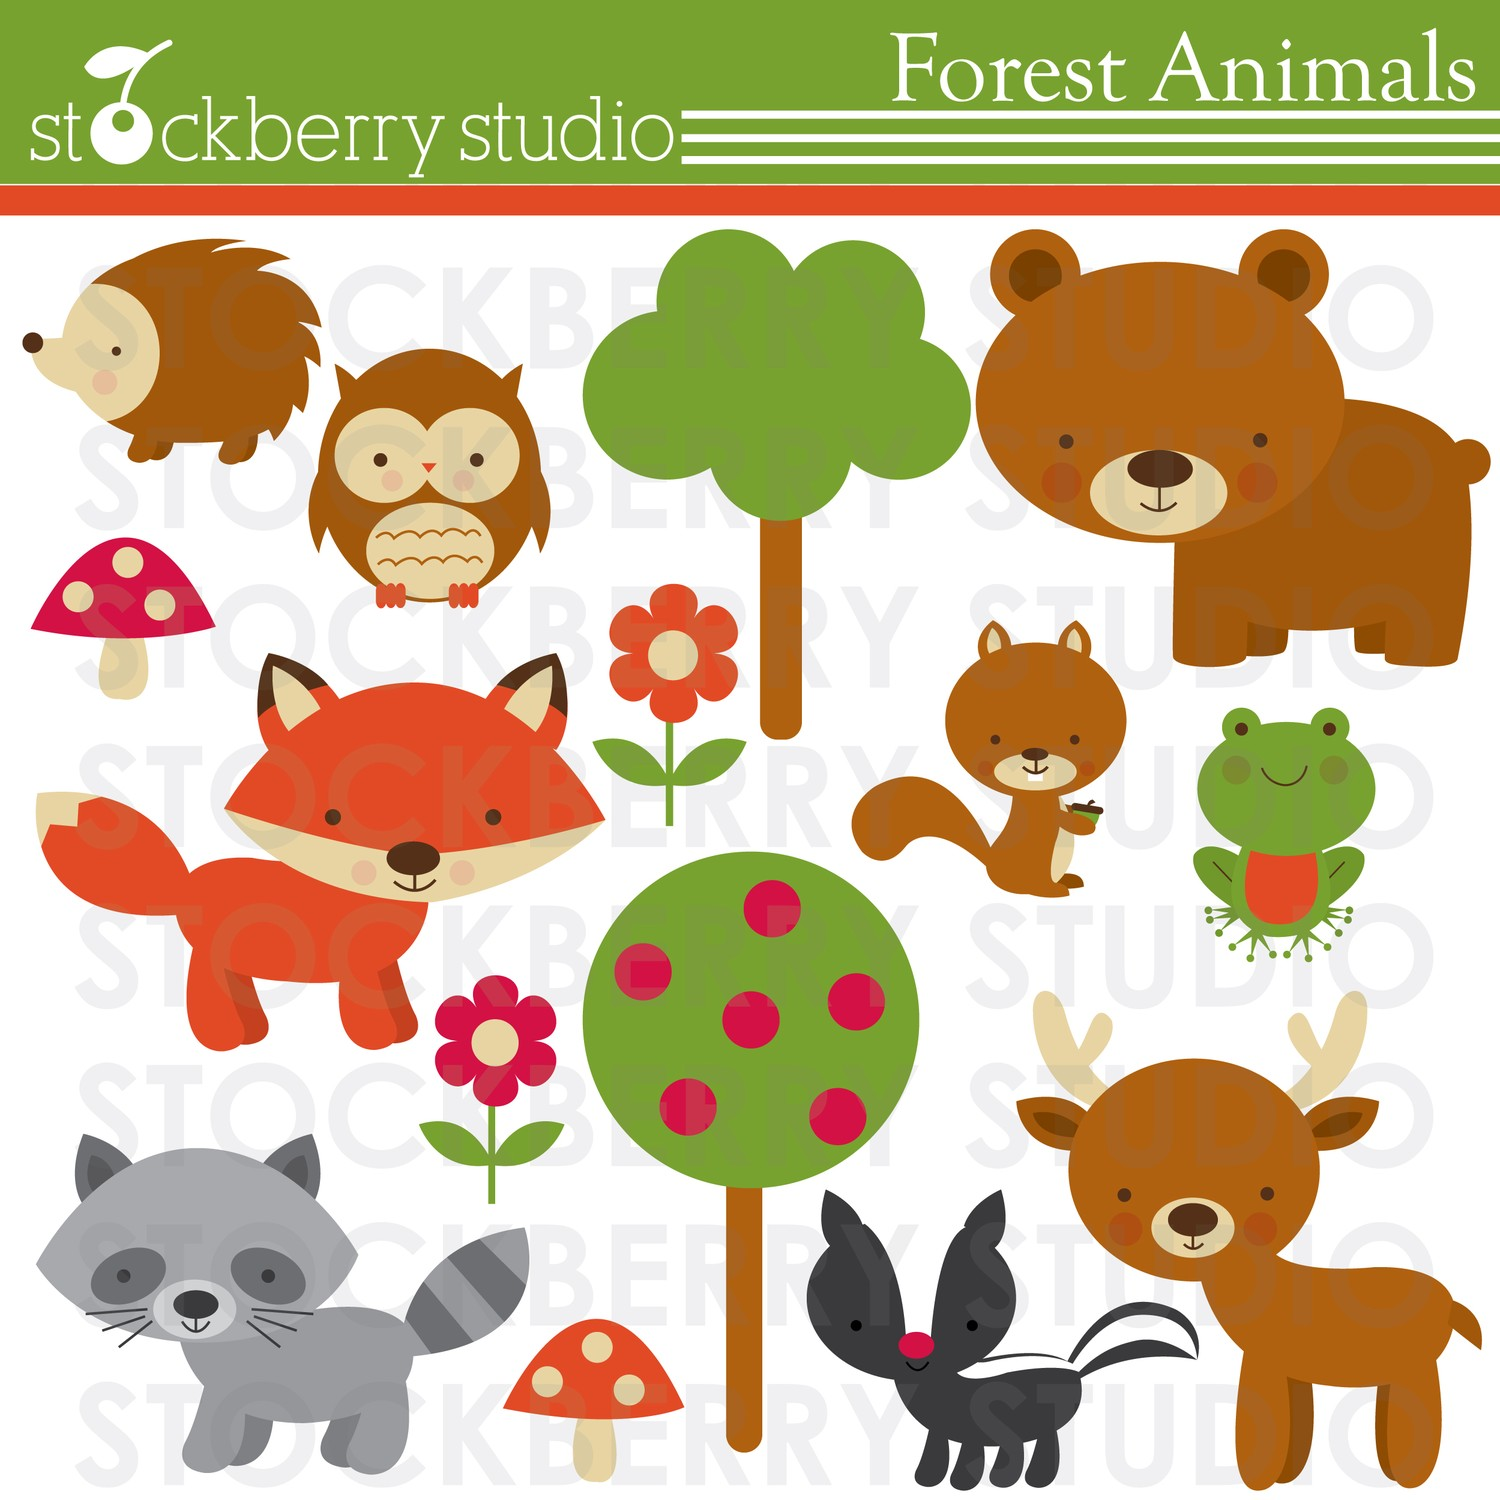 Forest Animals Personal And Commerical Use By Stockberrystudio